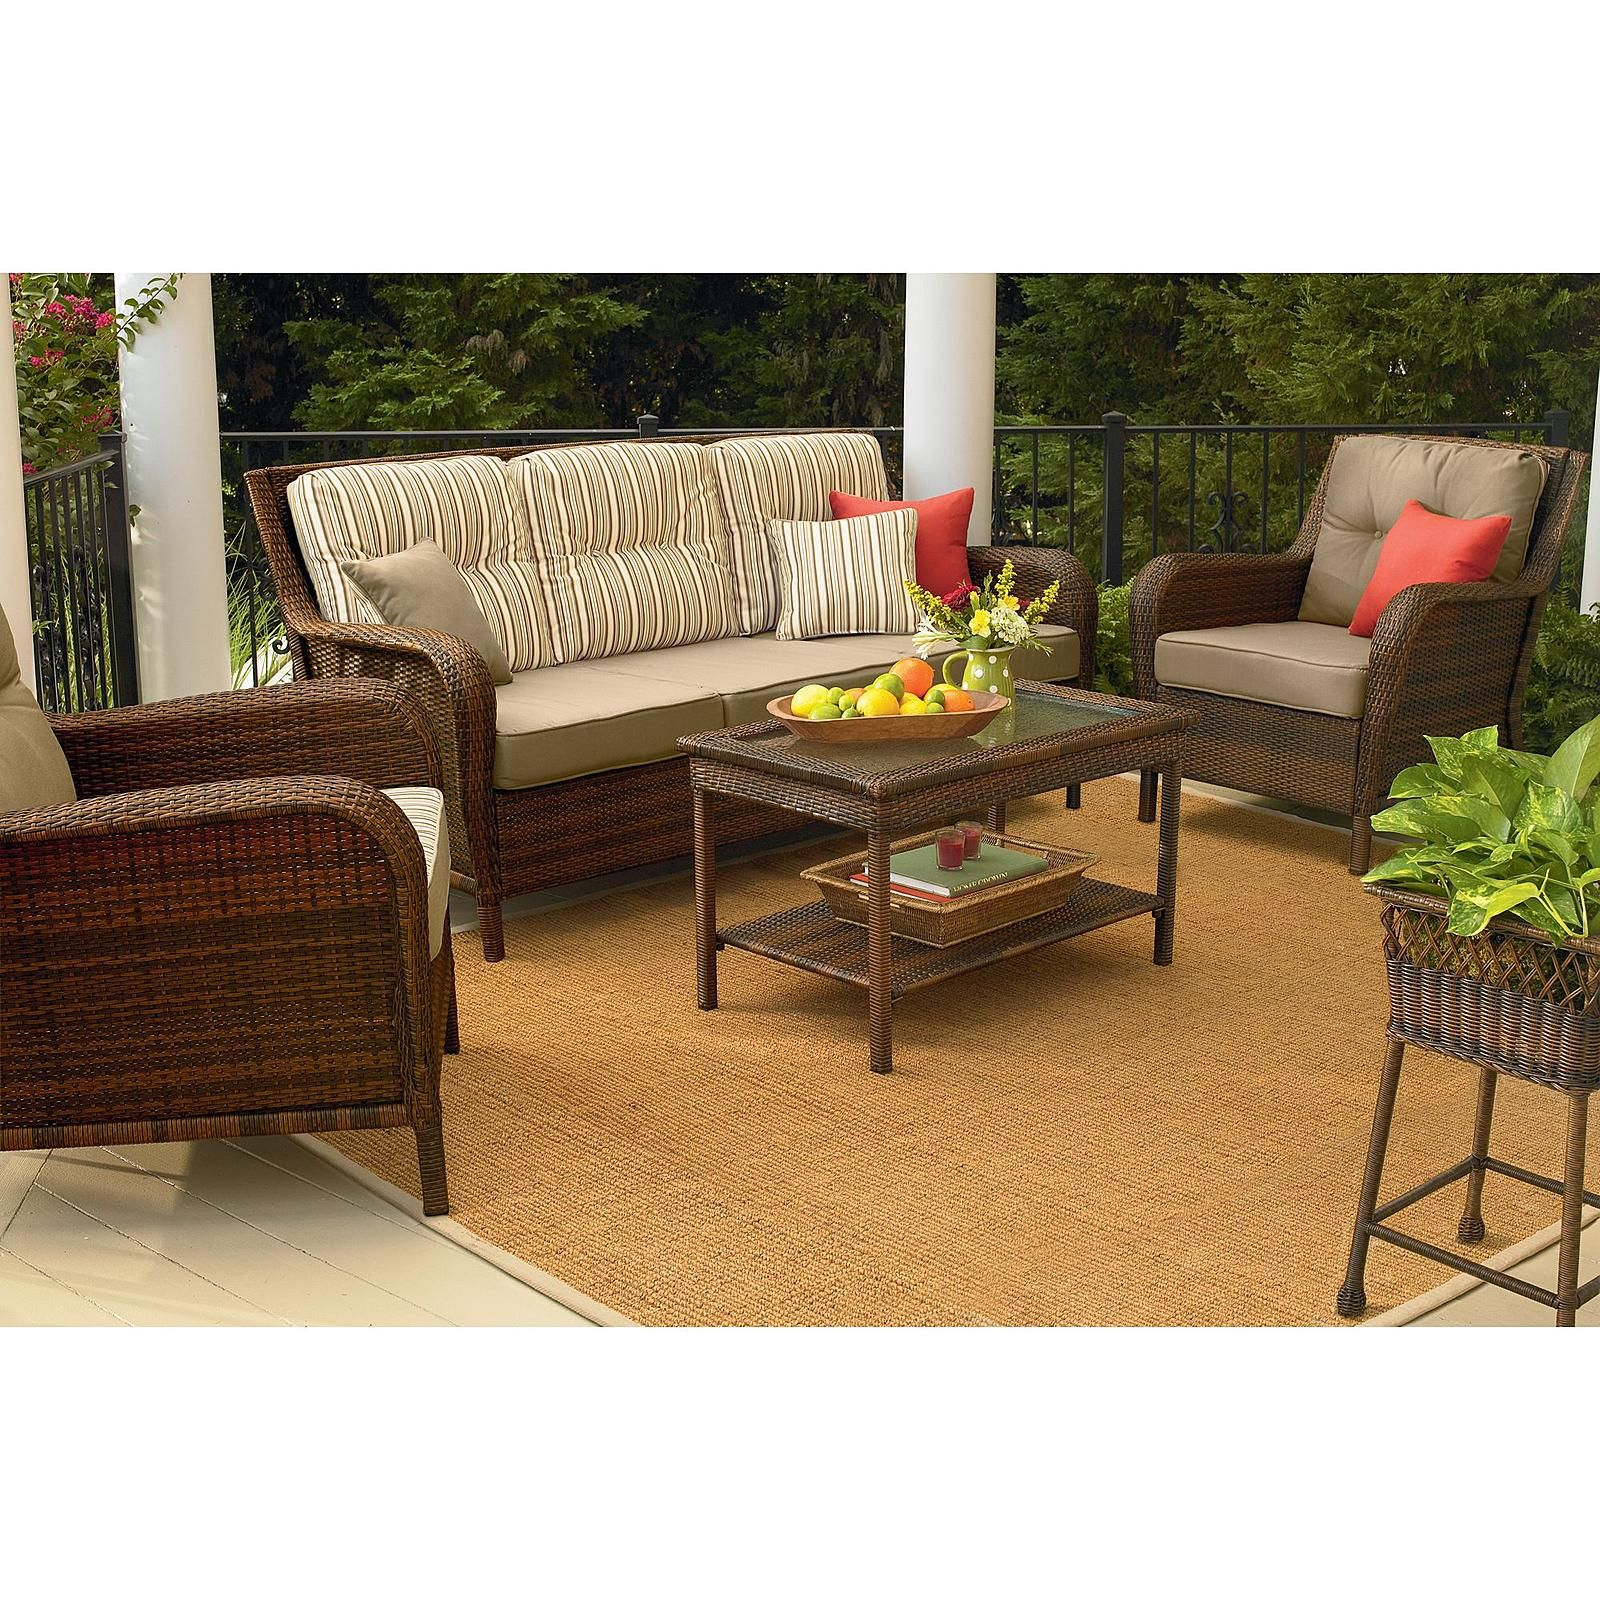 Mayfield Wicker Patio Sofa Transform Your Outdoor Style With